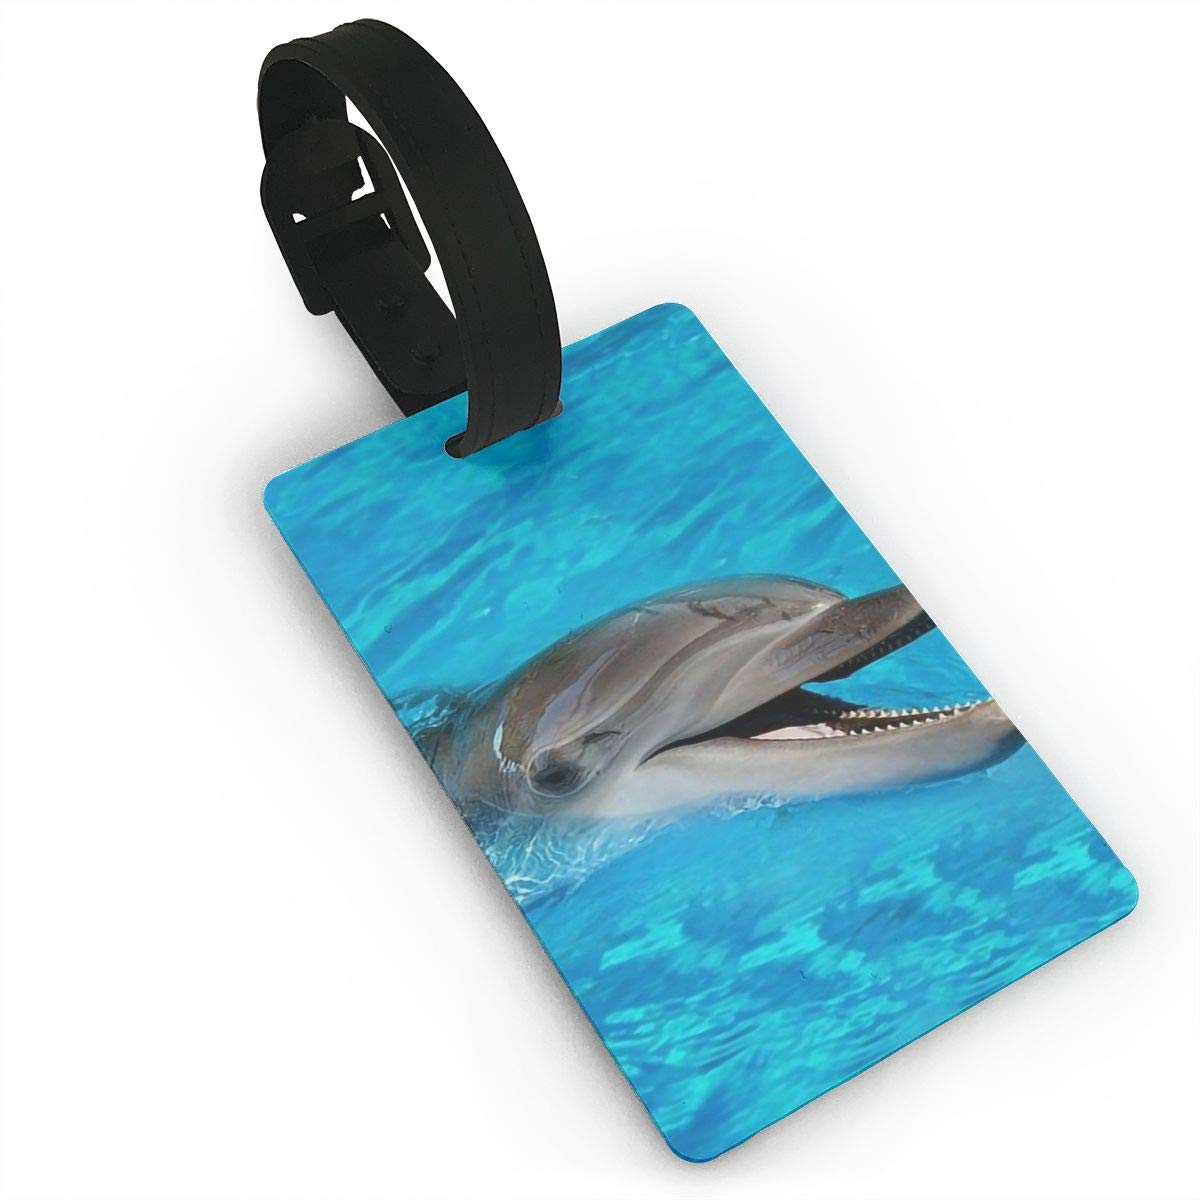 Dolphins Ocean Handbag Tag For Travel Tags Accessories 2 Pack Luggage Tags